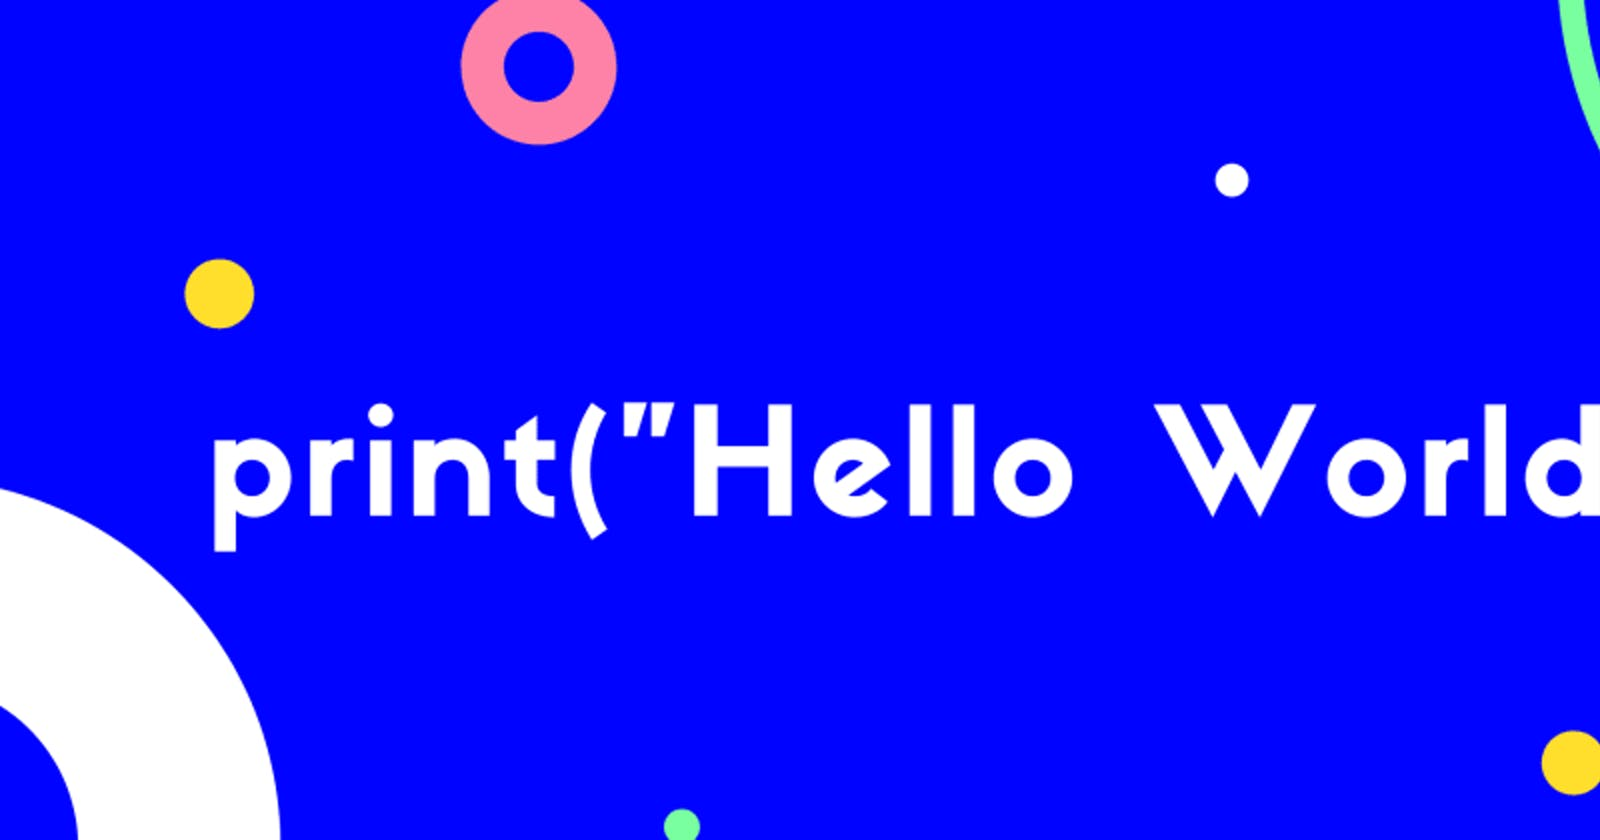 Hello World in the languages I know